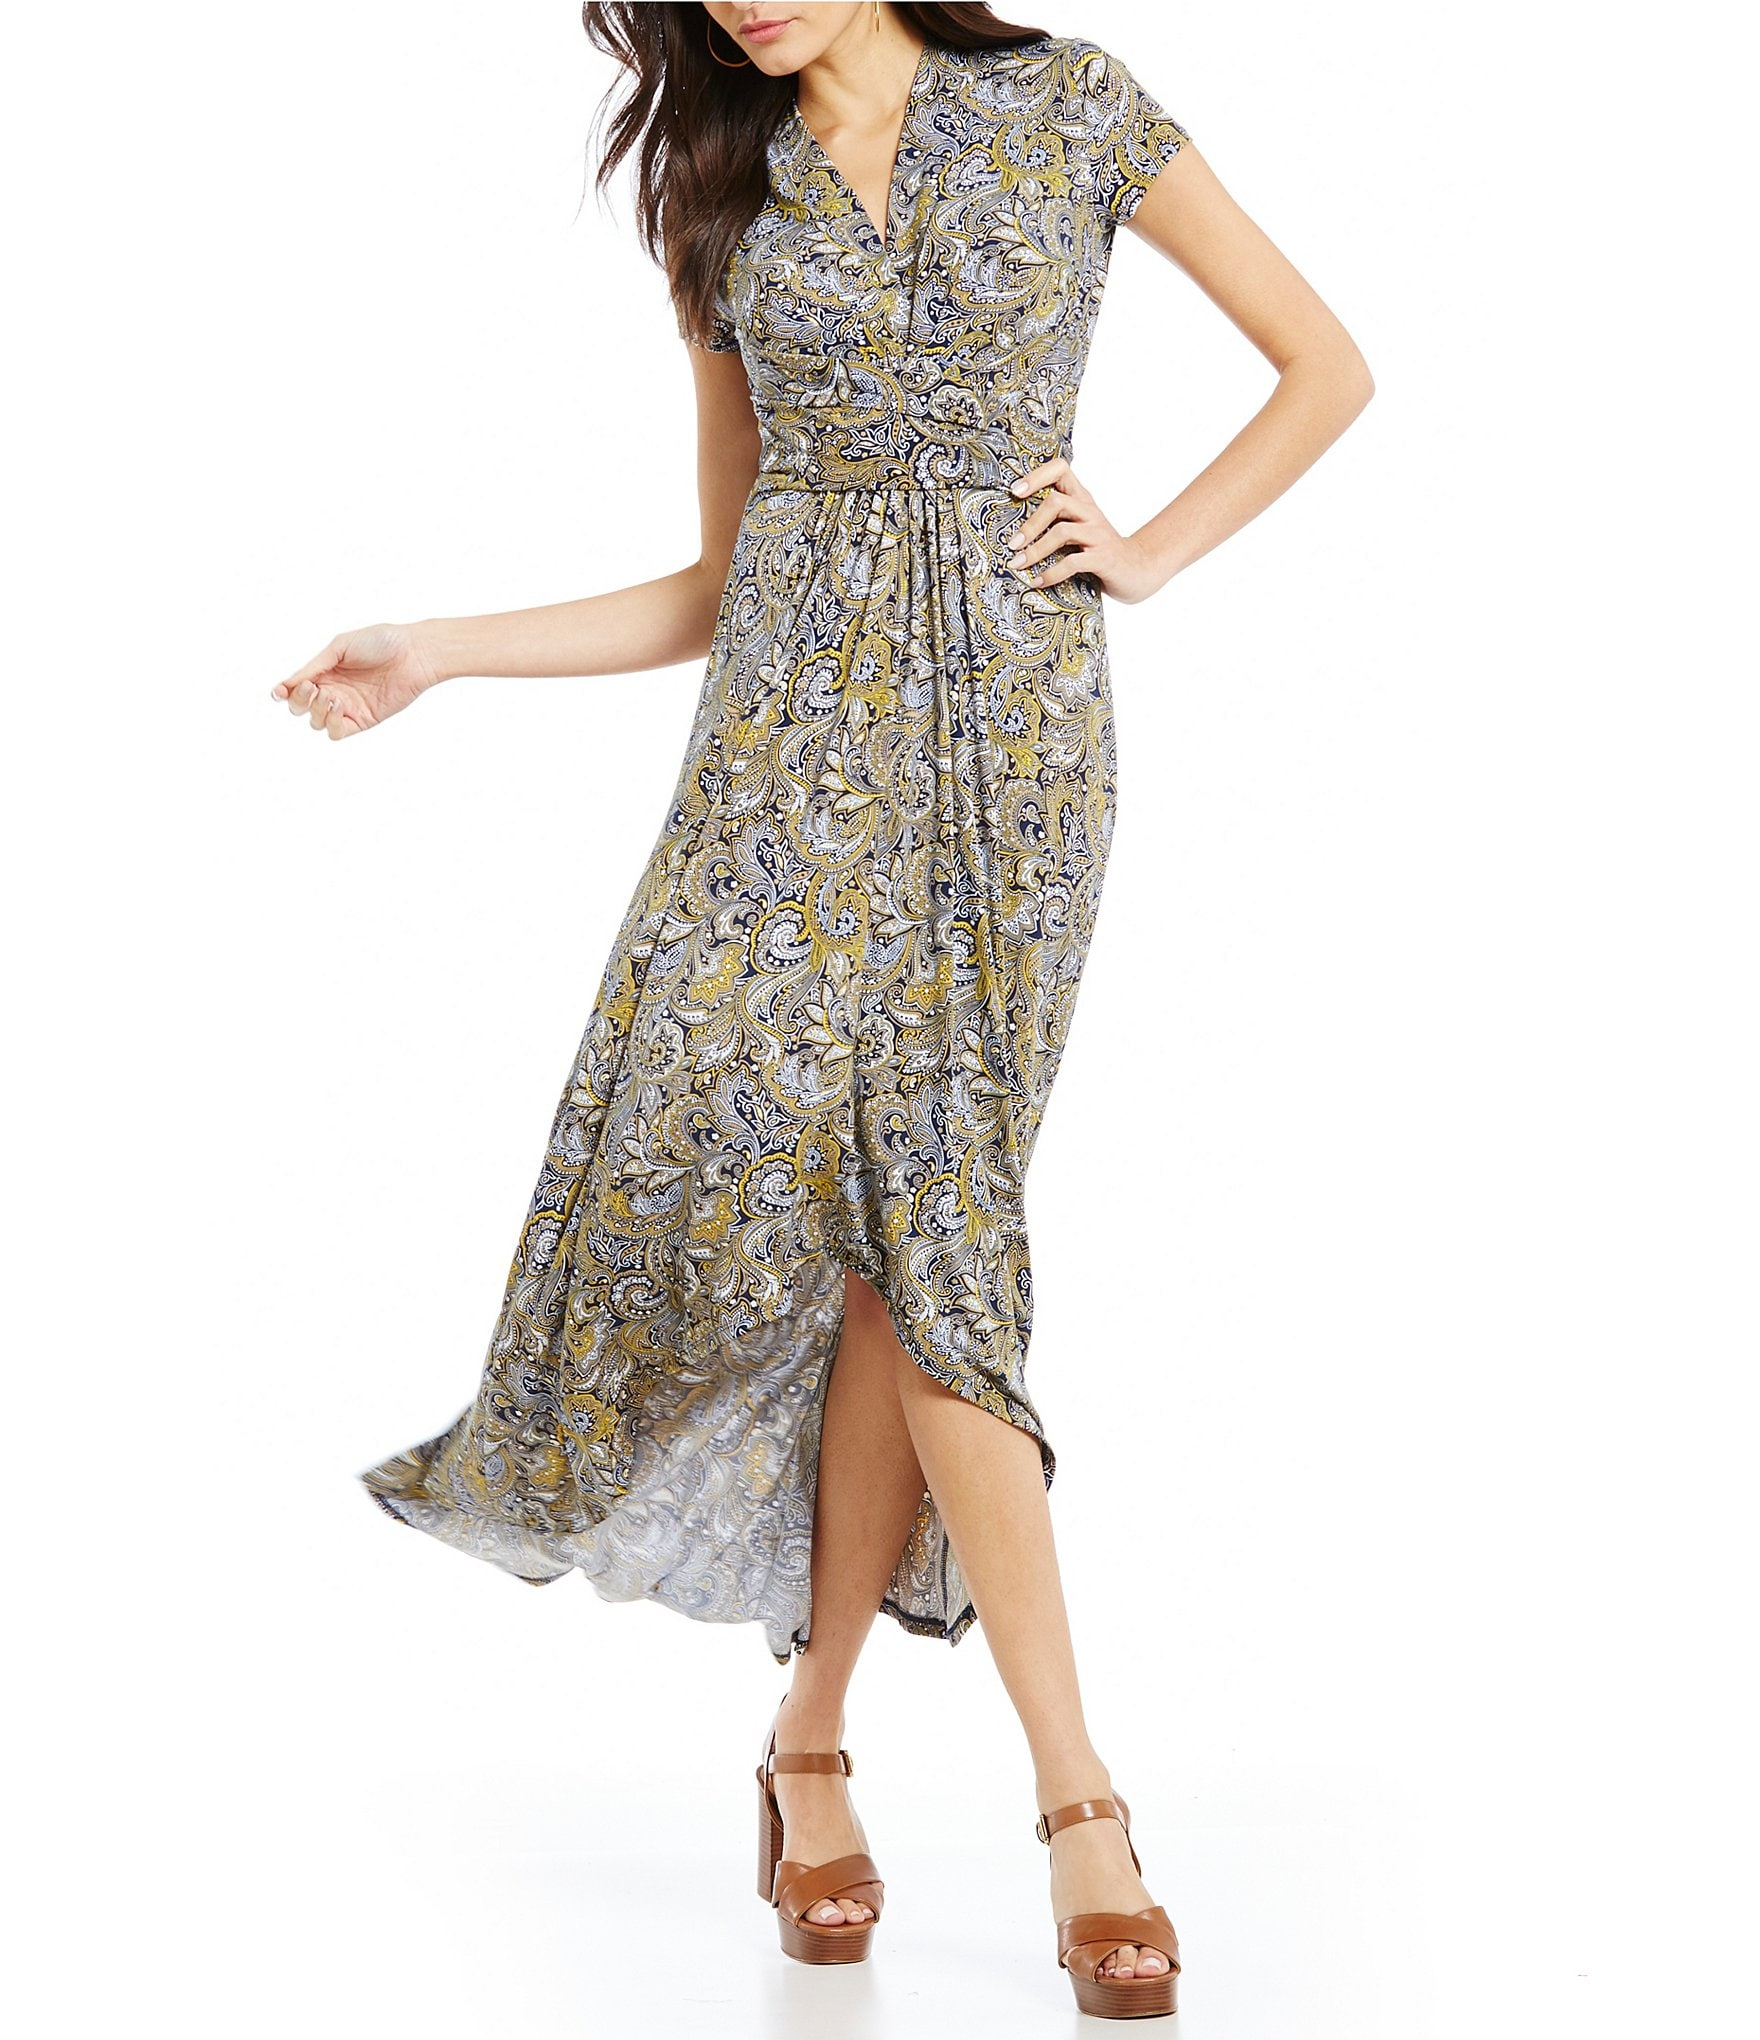 Buy Michael Kors Paisley Print Dress Off59 Discounted